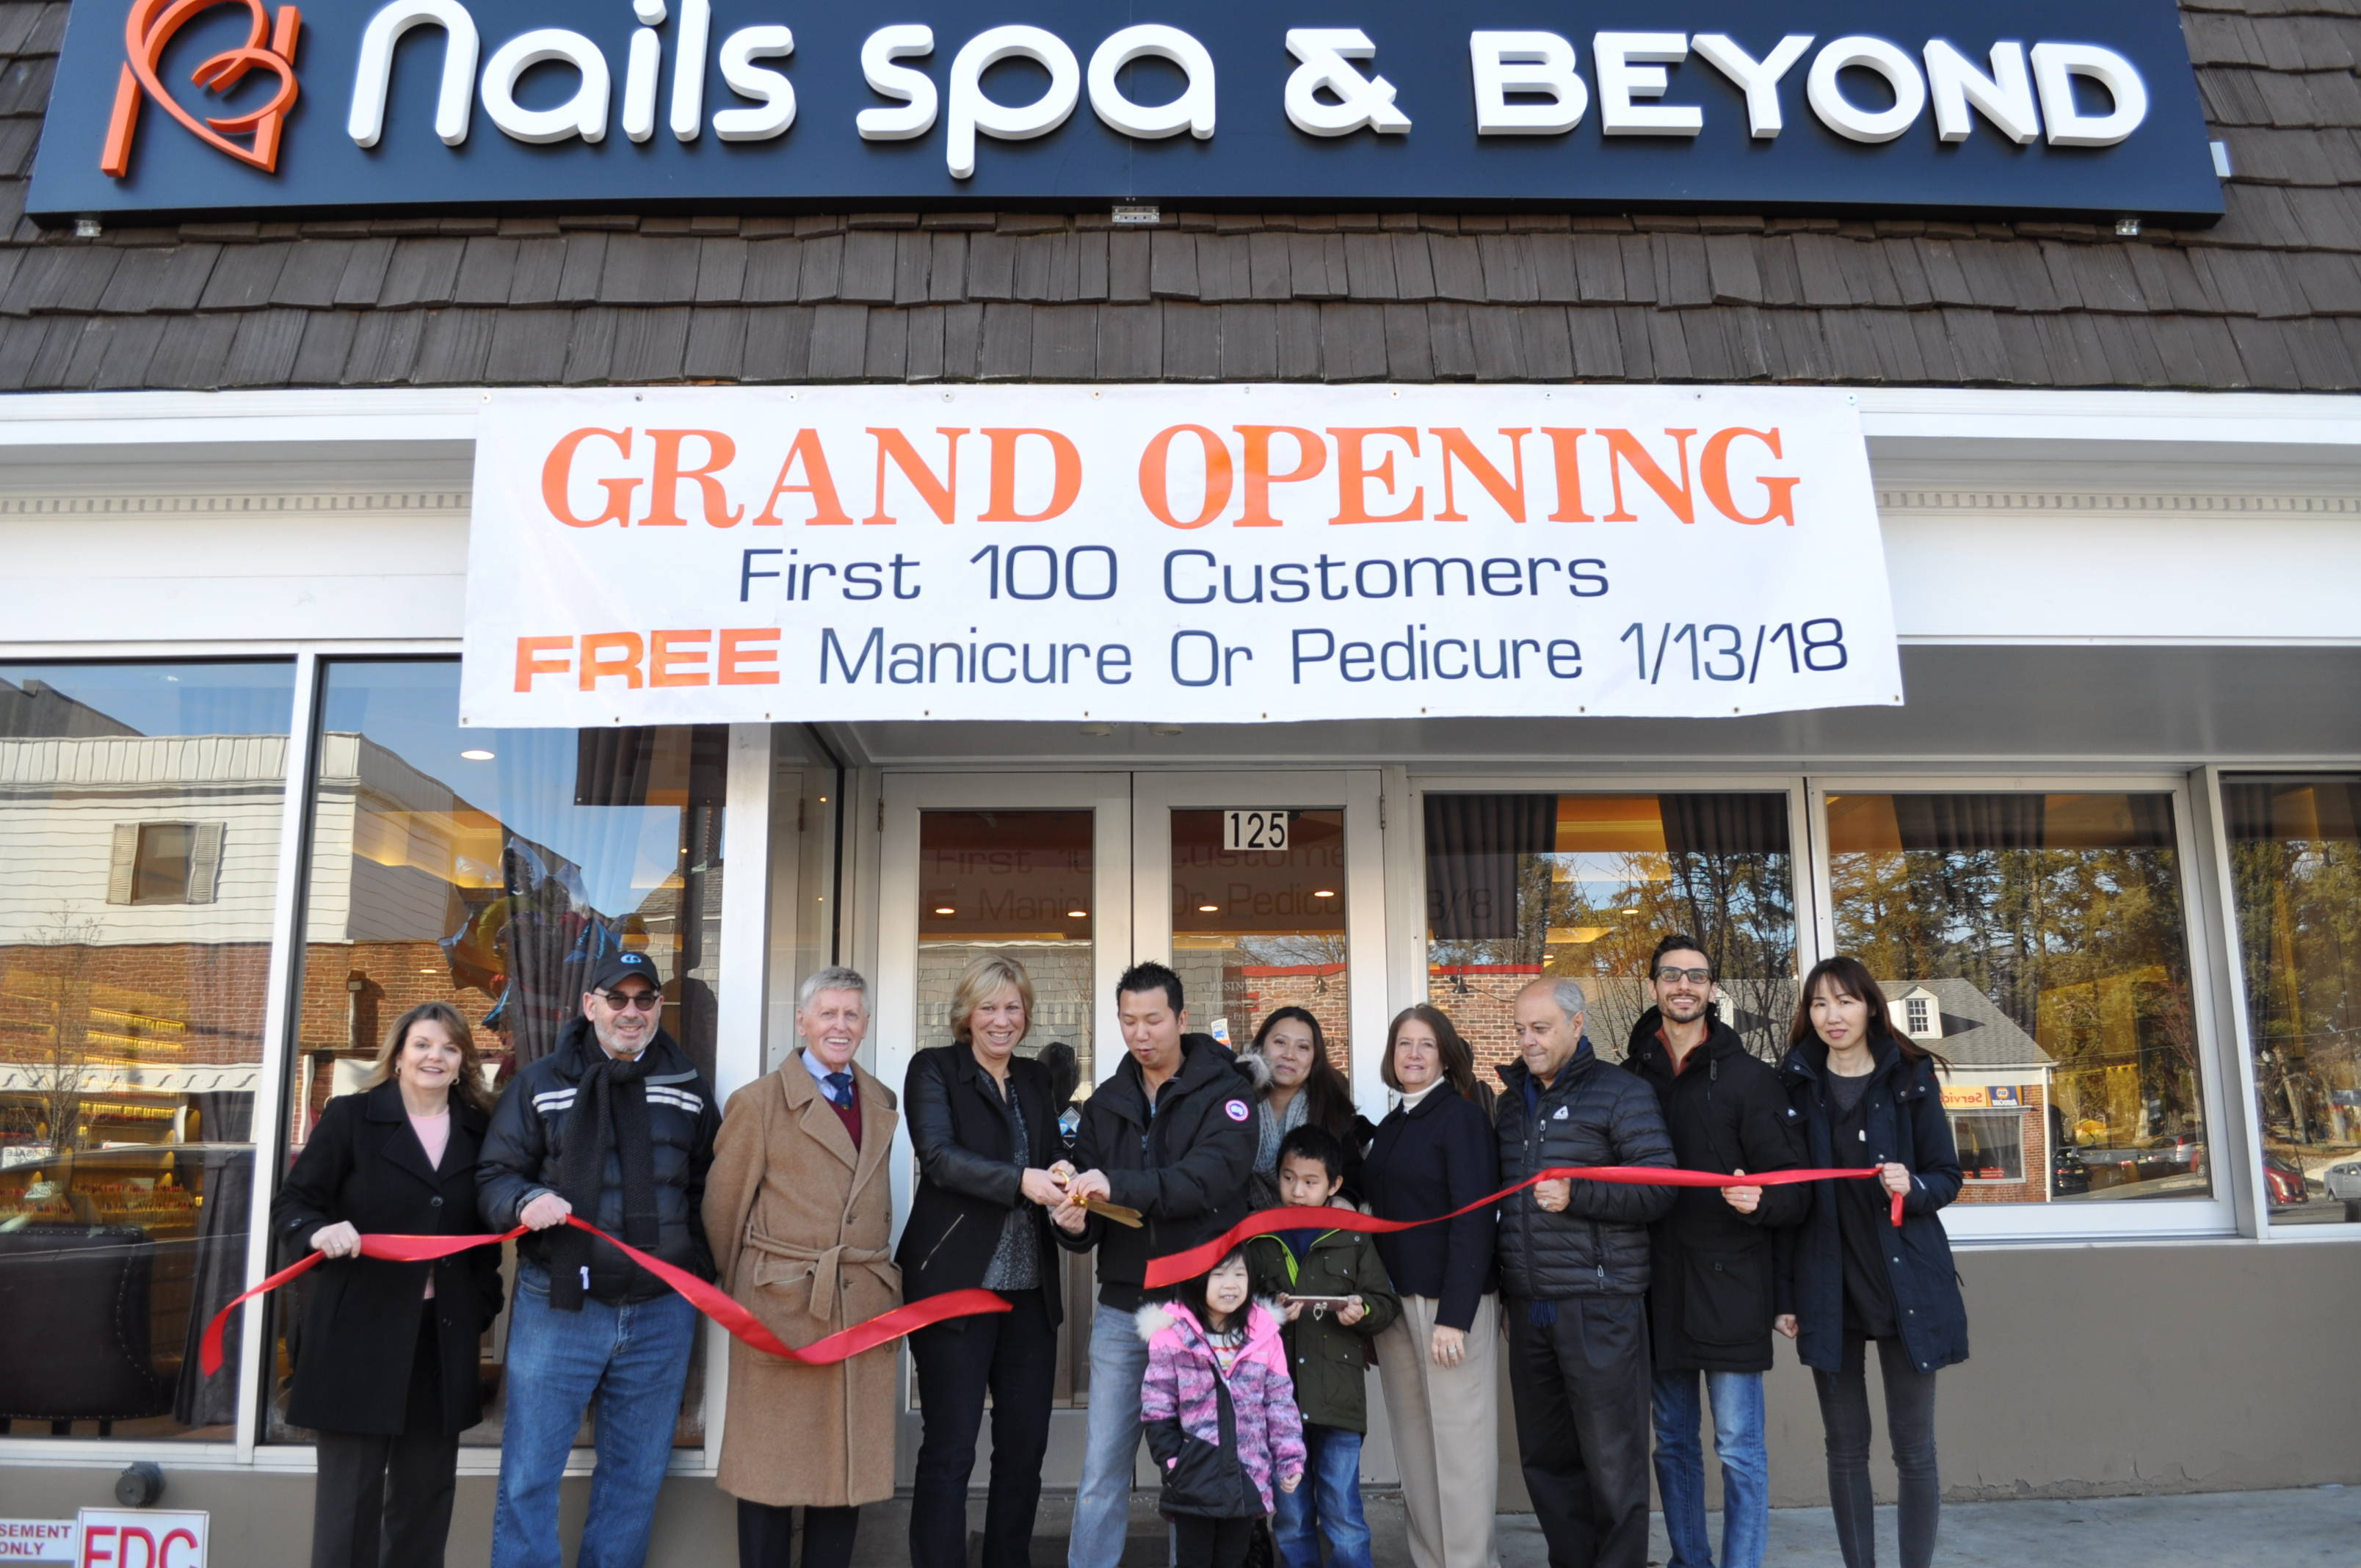 Nails Spa & Beyond Opens in Downtown Westfield - News - TAPinto